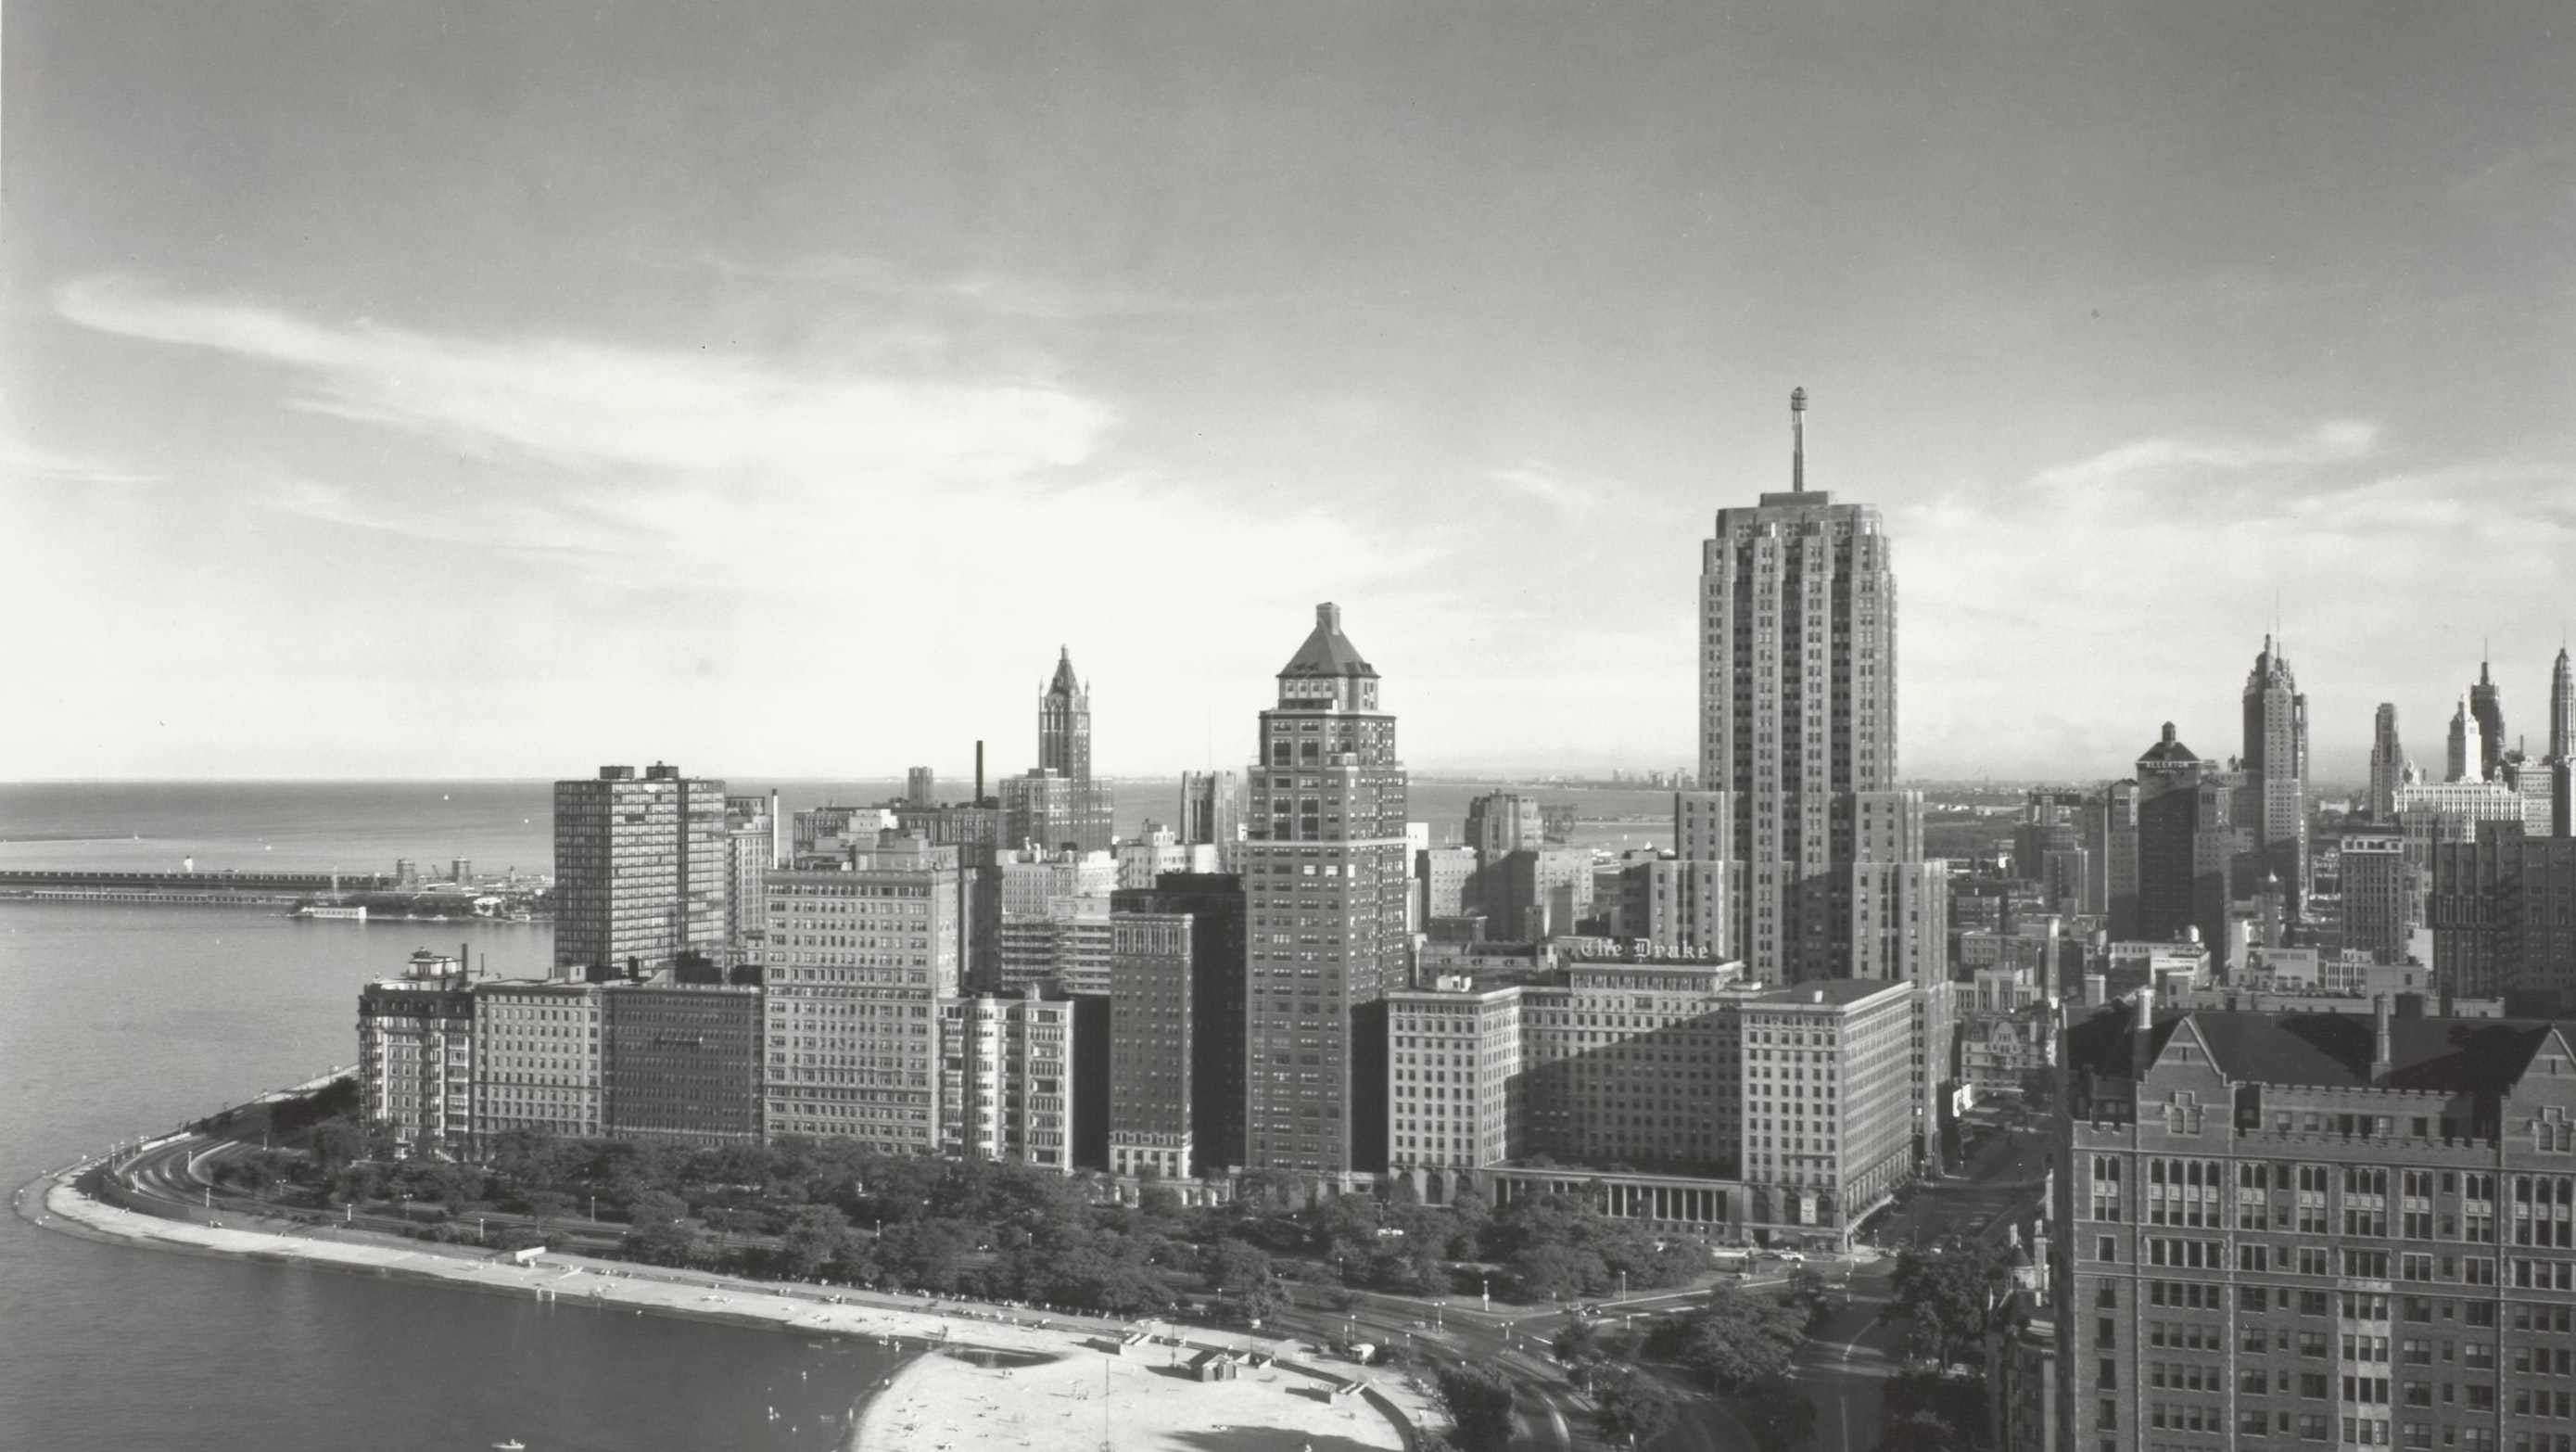 Black and white photo of Lake Shore Drive and the Chicago skyline